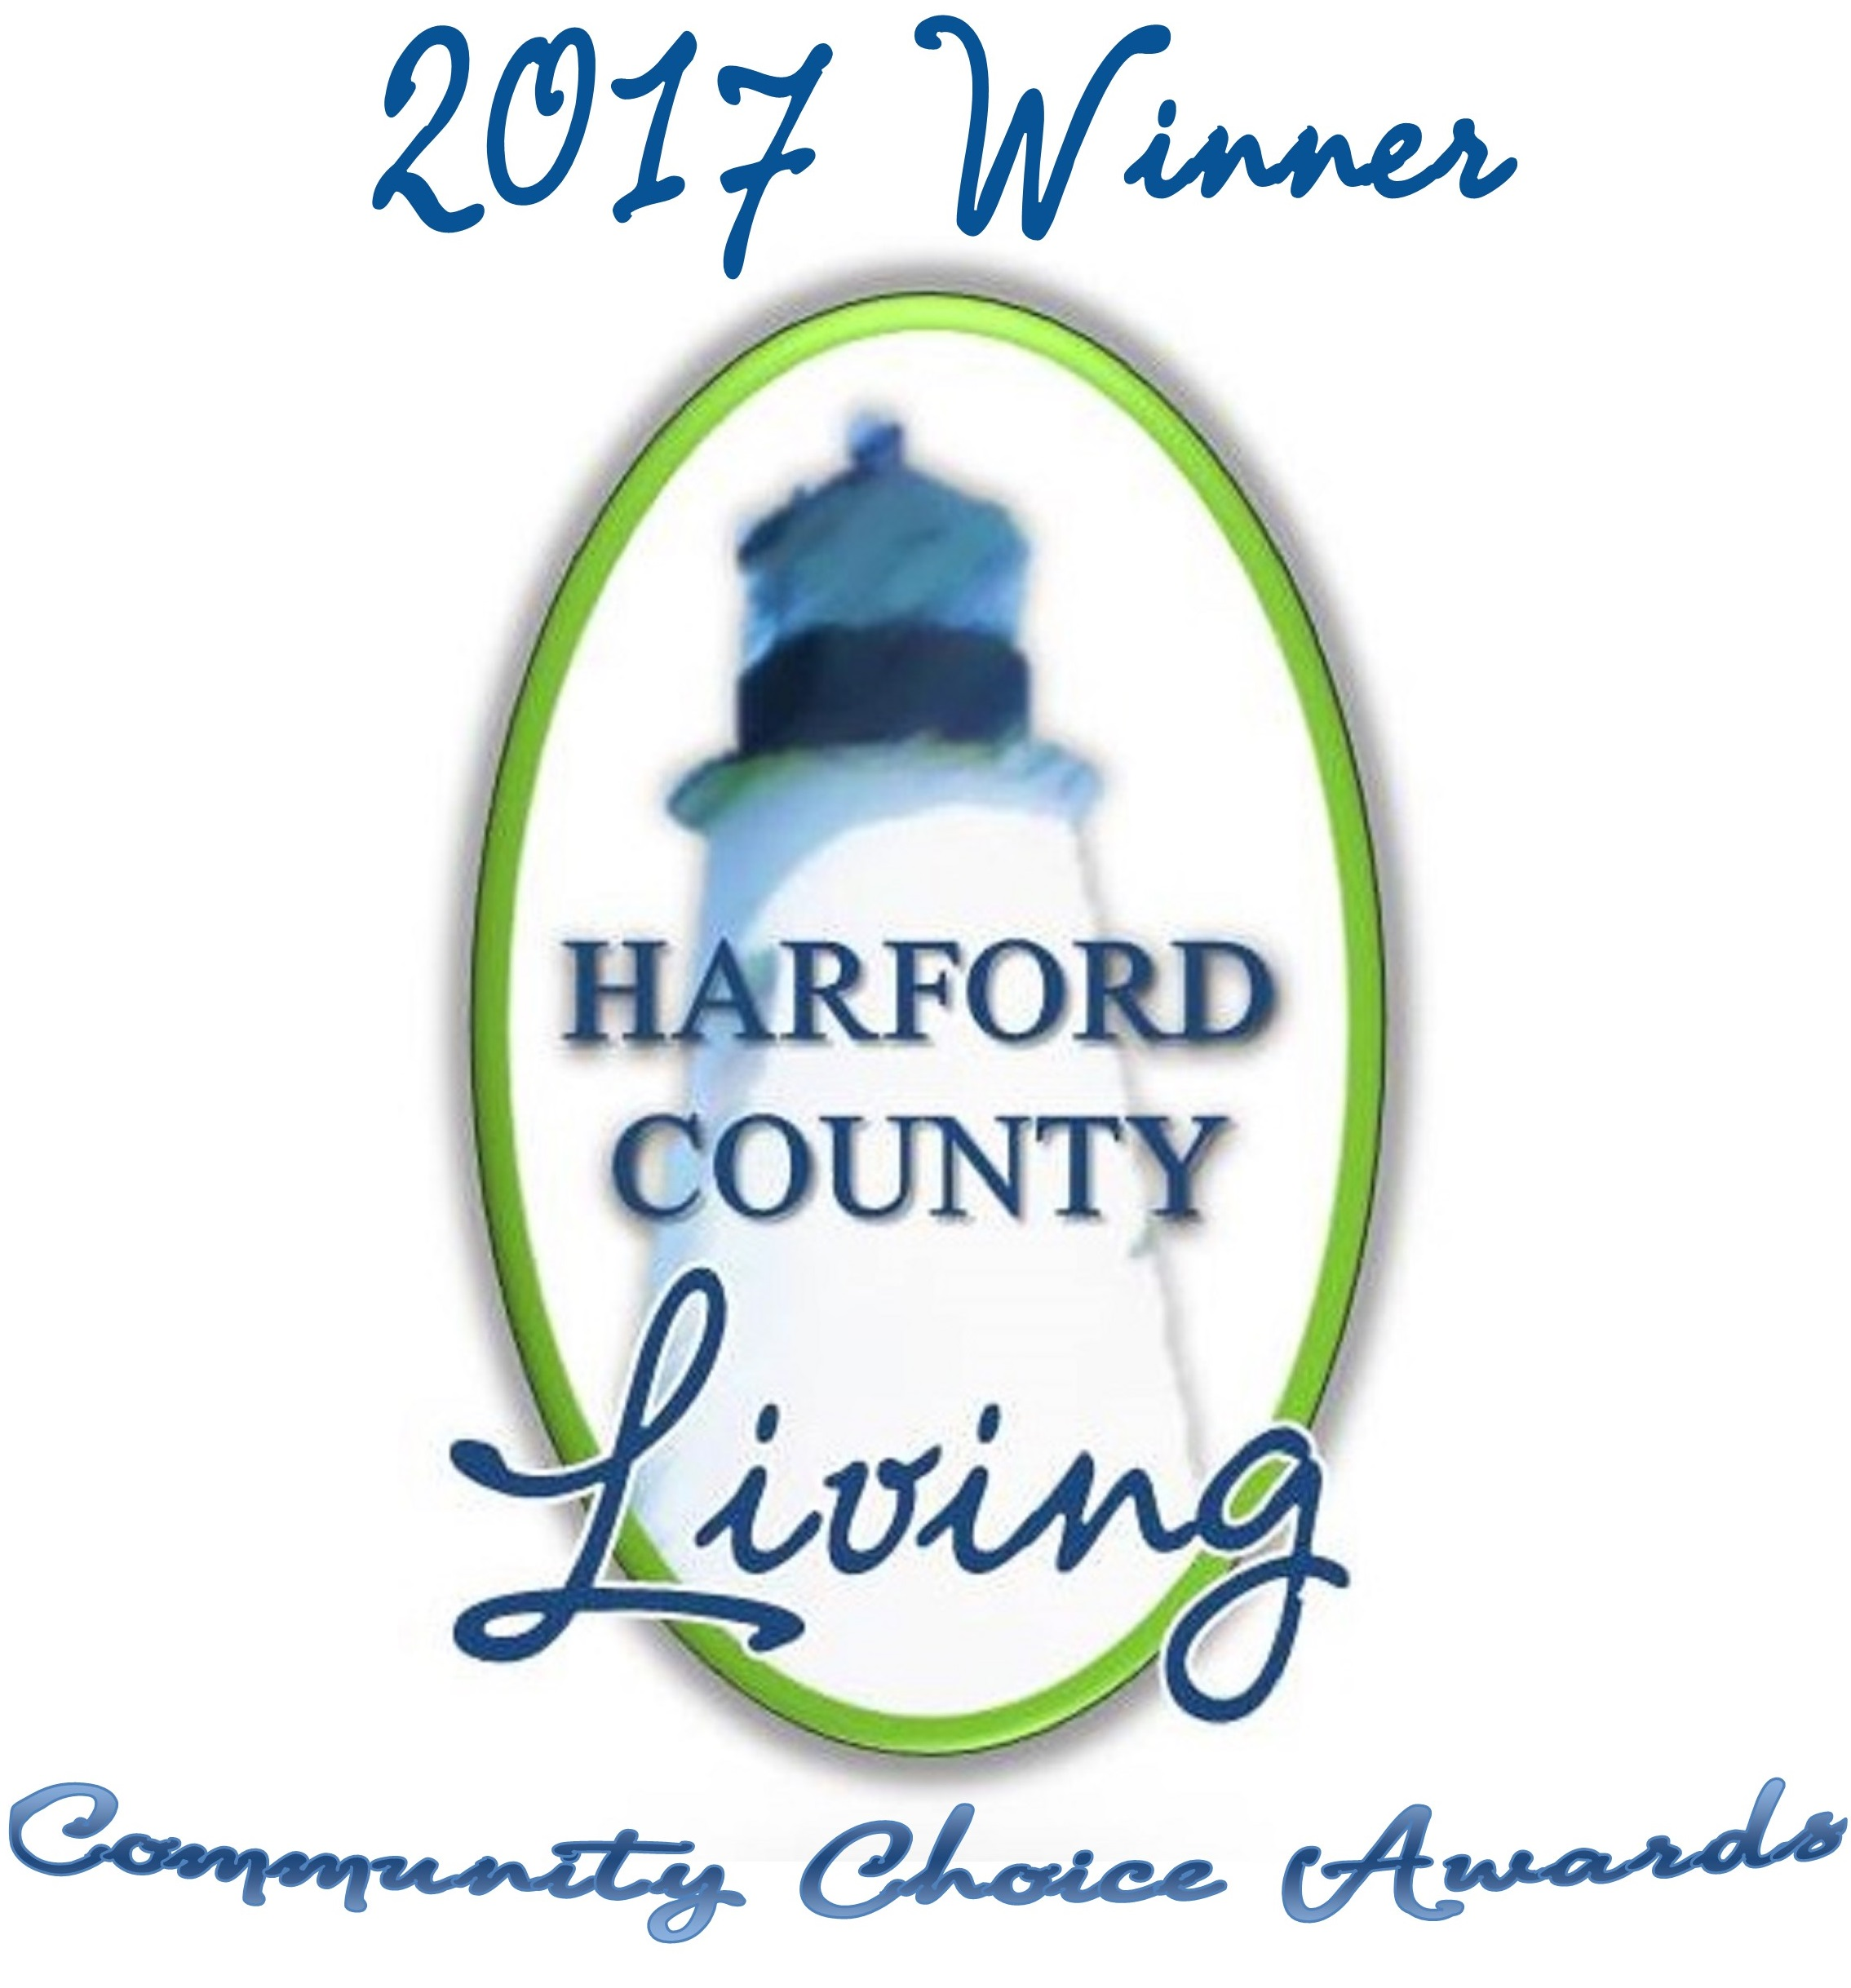 Harford County Living Community Choice Awards - 2017 Winner